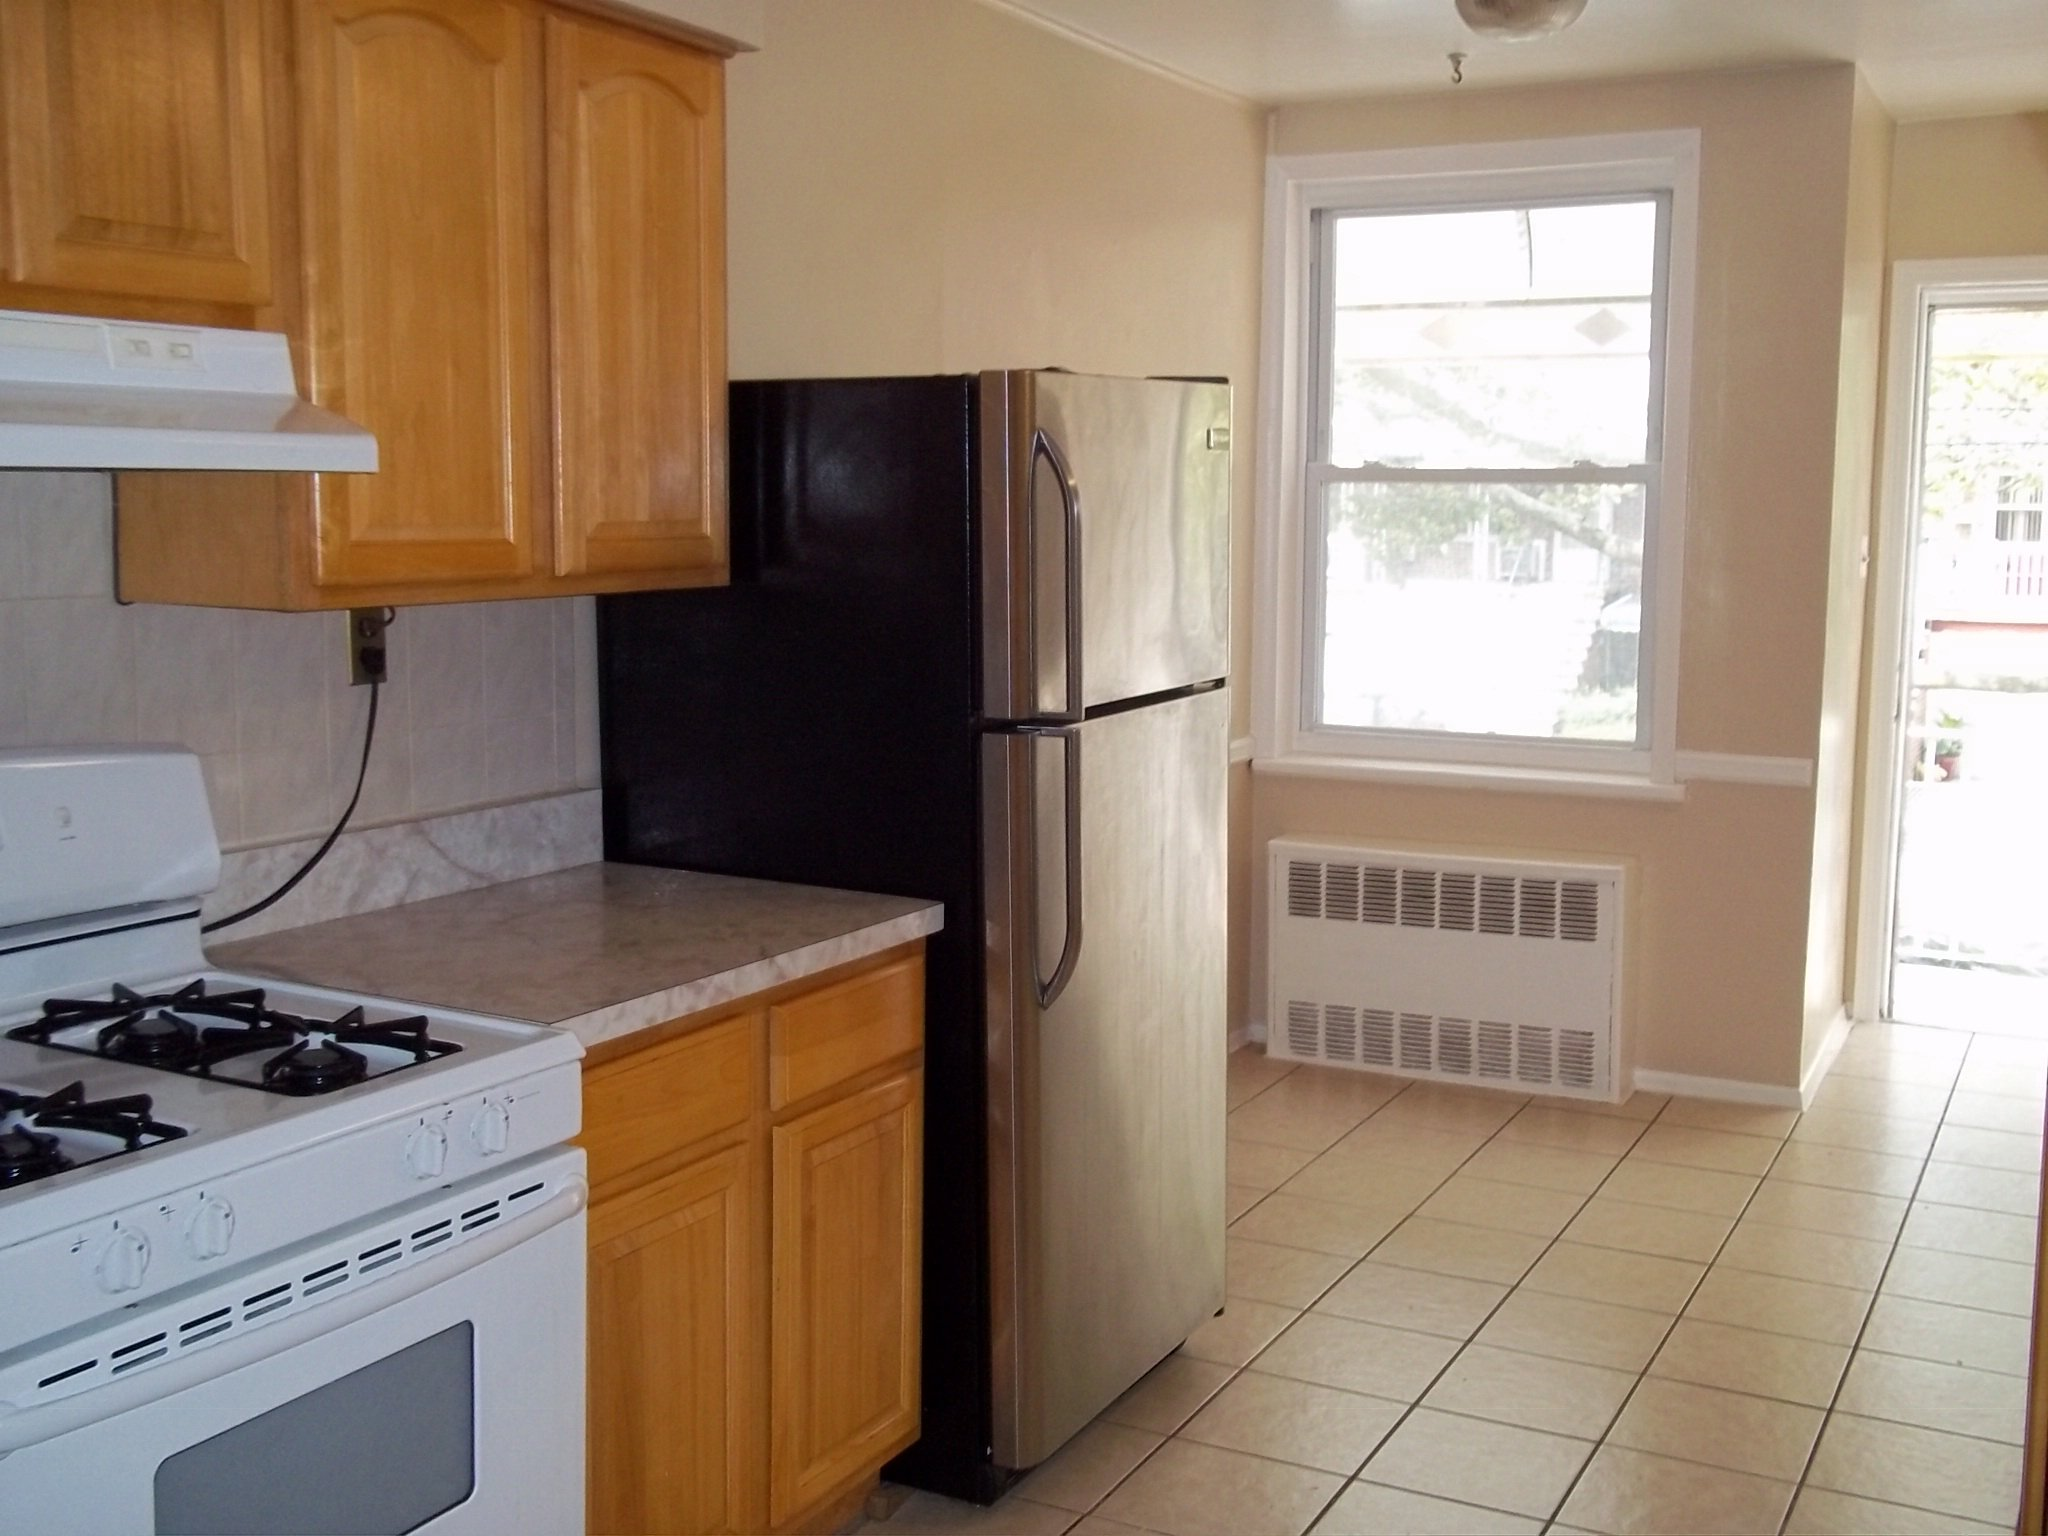 2 Bedroom Apt 2 Bedroom Canarsie Apartment For Rent Brooklyn Crg3097